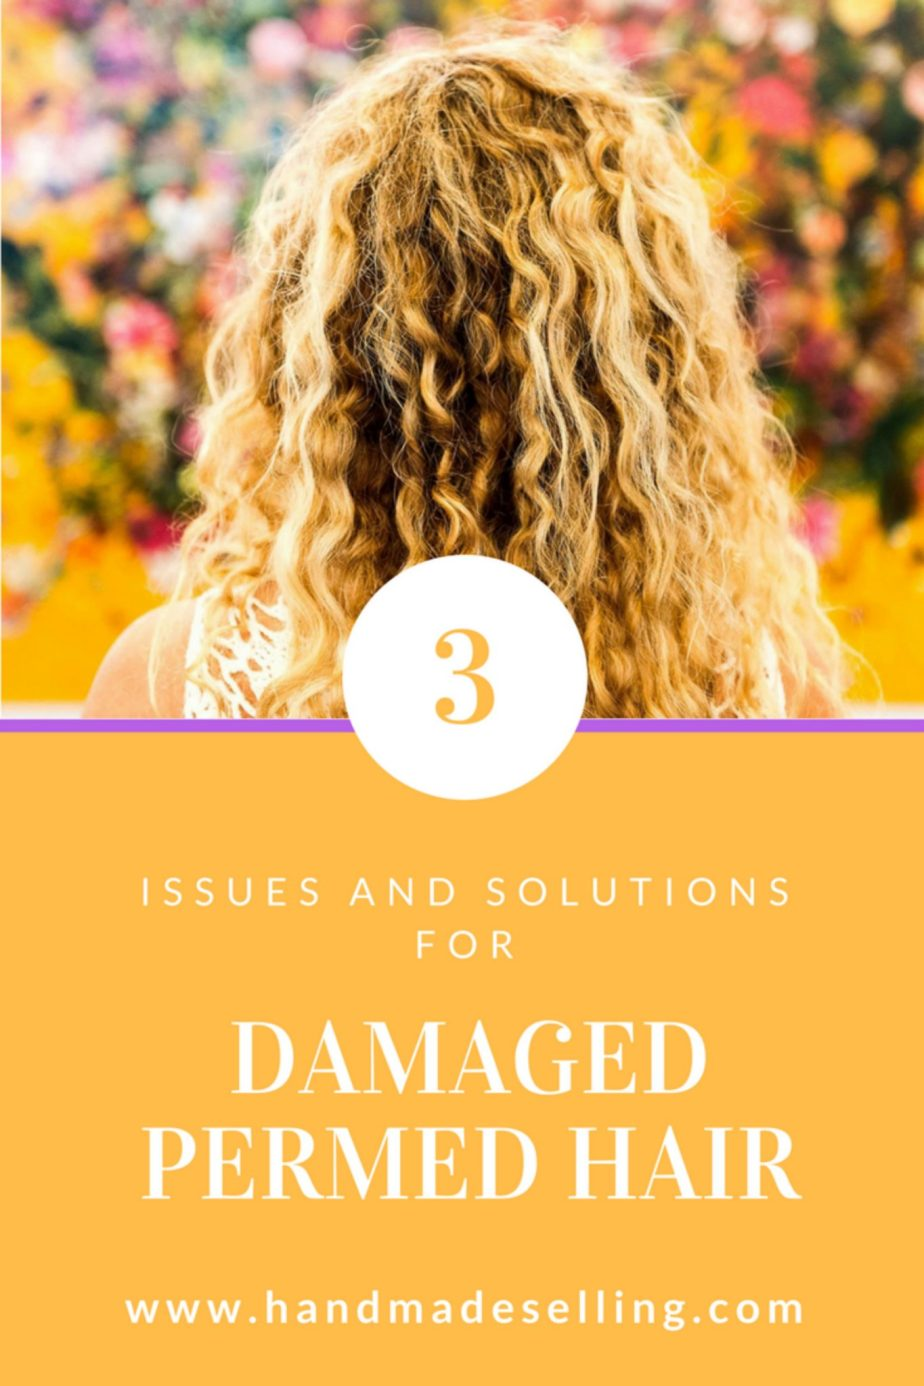 Damaged Permed Hair Causes And Remedies Handmadeselling